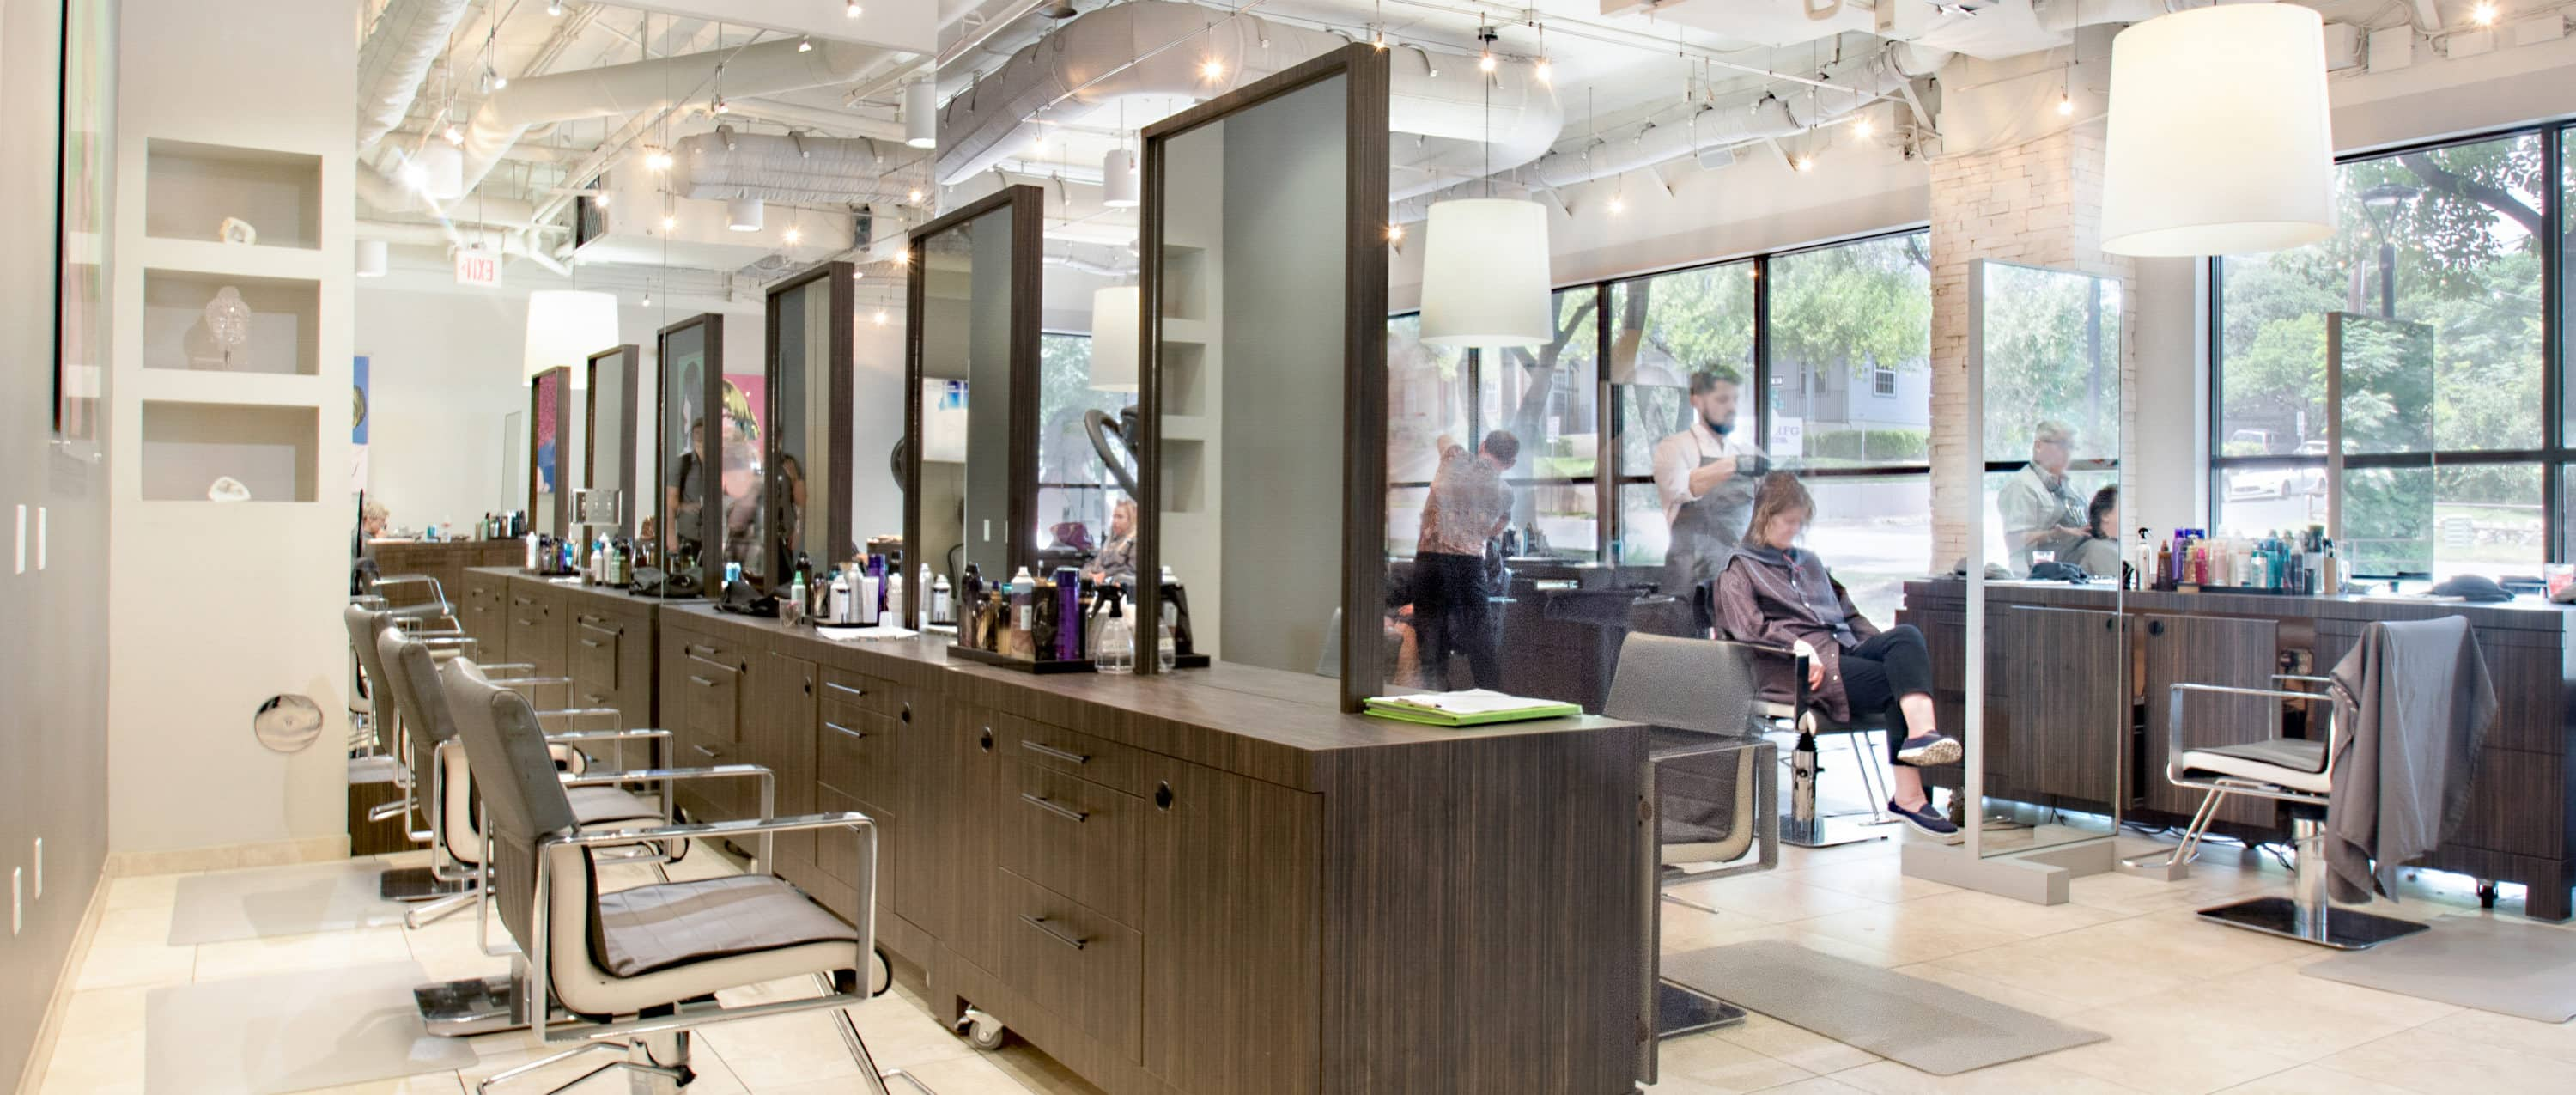 Hartland Plaza Retail | Jose Luis Hair Salon Interior in Austin, Texas